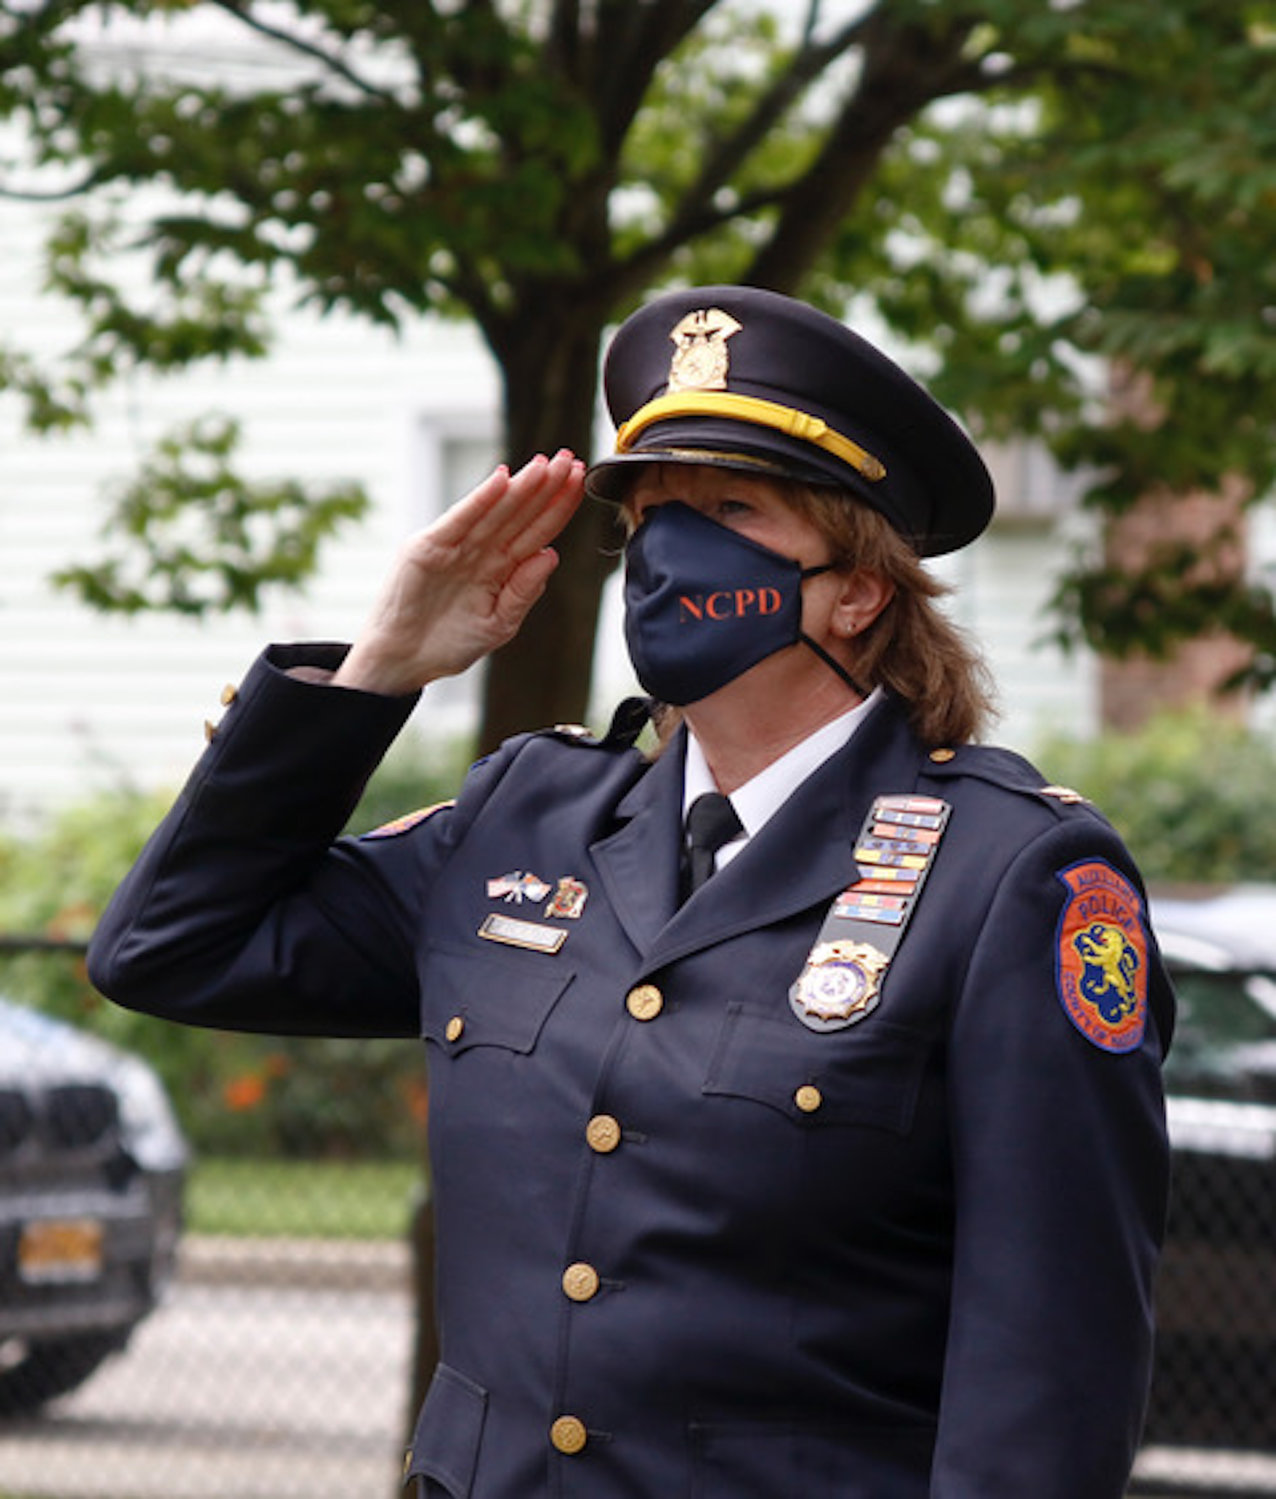 Nassau County Police Department Auxiliary Inspector Diane Laukaitis saluted.